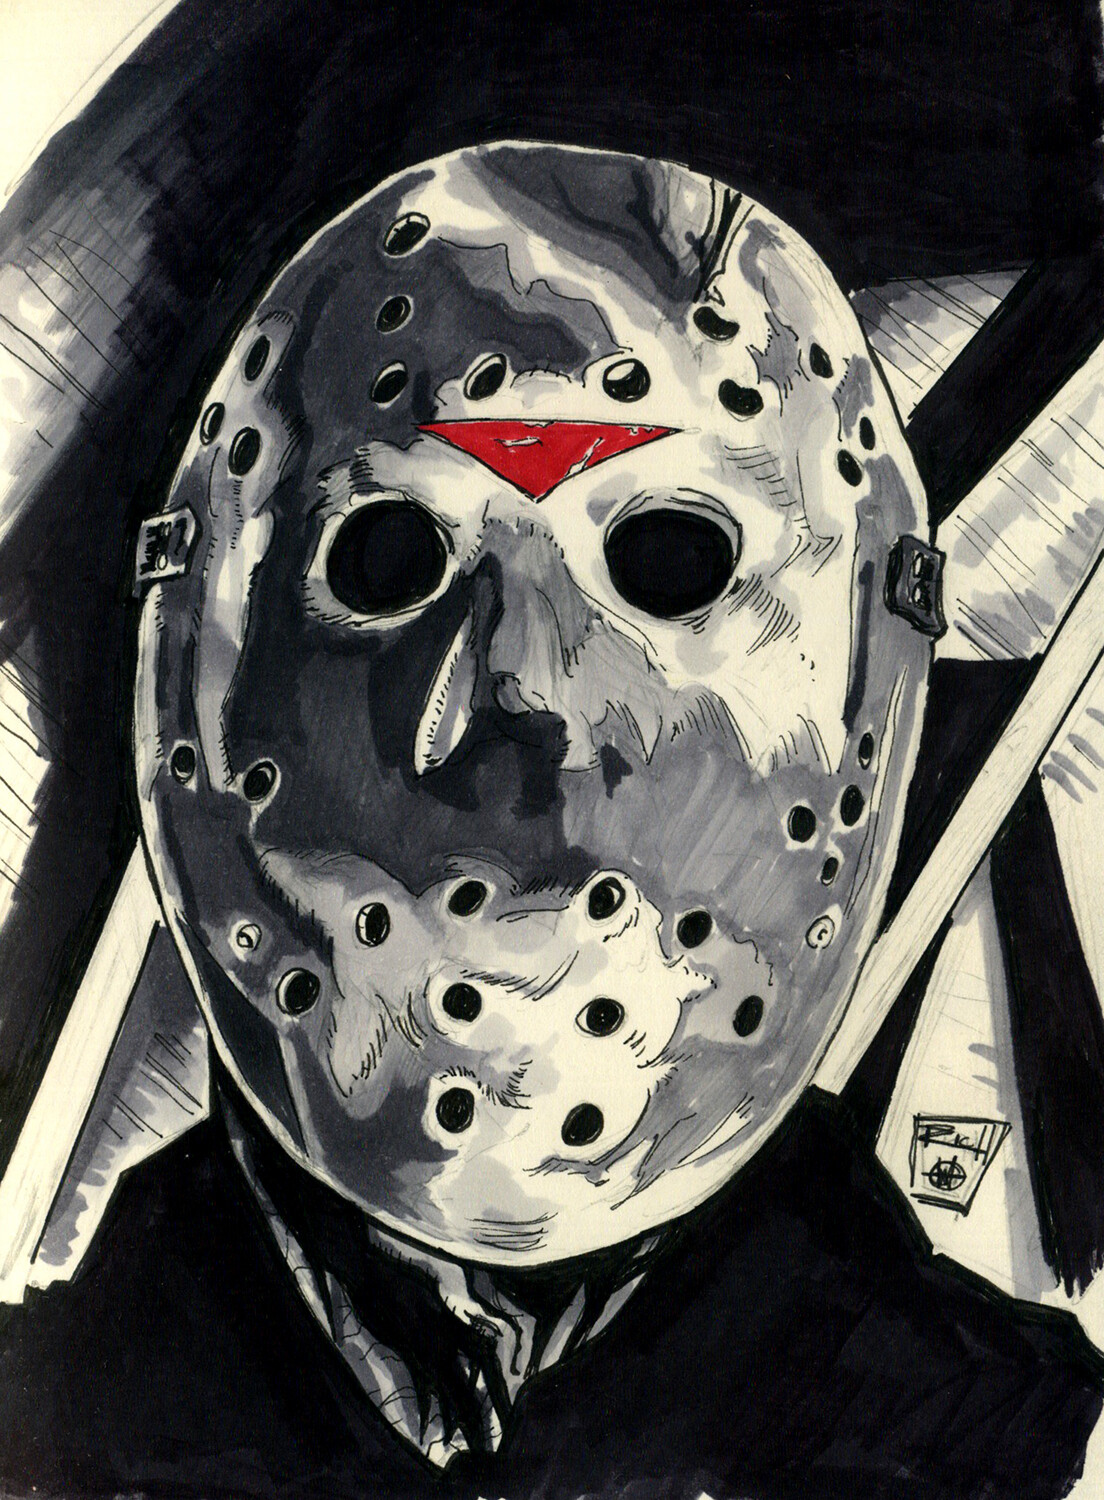 Inktober Illustration: Jason Lives!